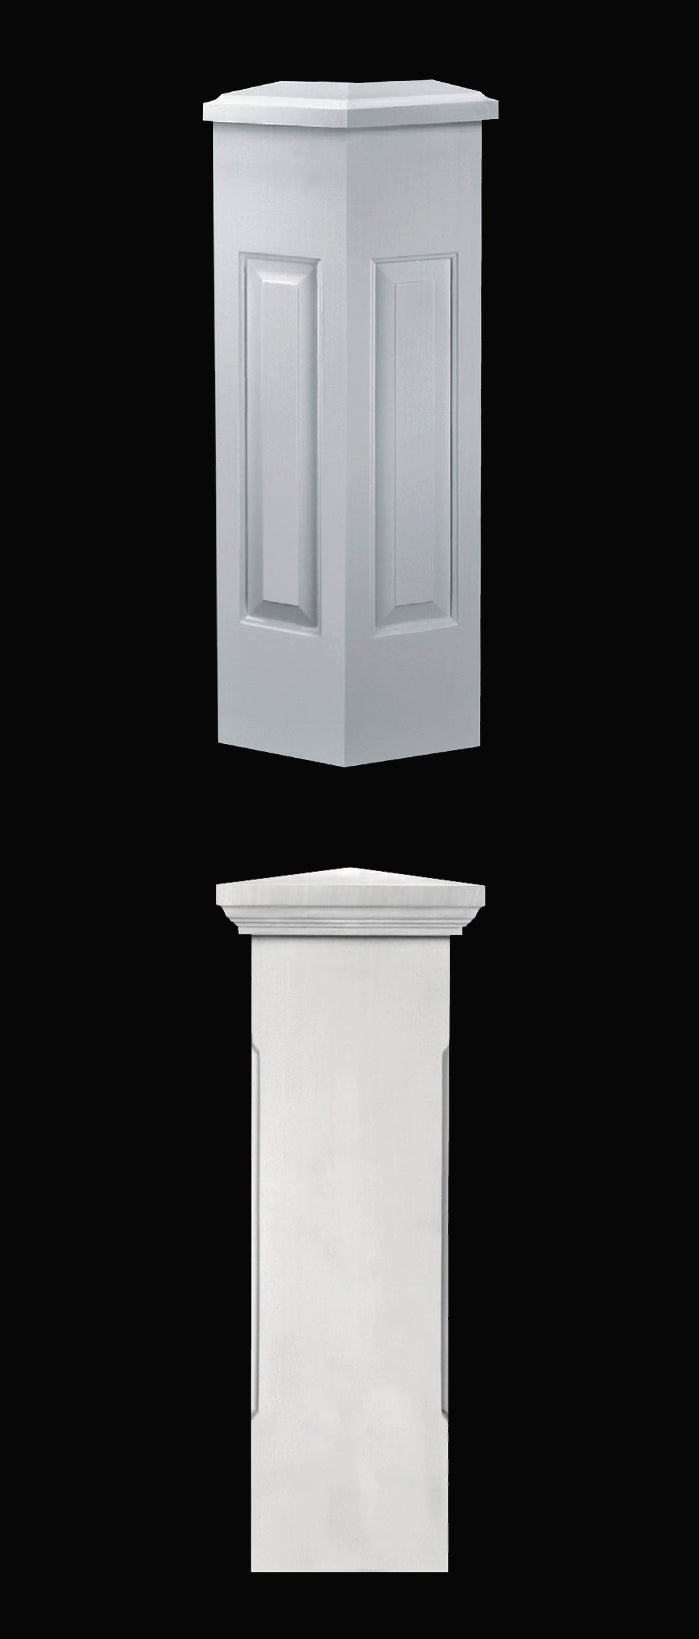 Synthetic Stone Pre-Finished Composite Balustrade Newel Post Designs from Brockwell Incorporated